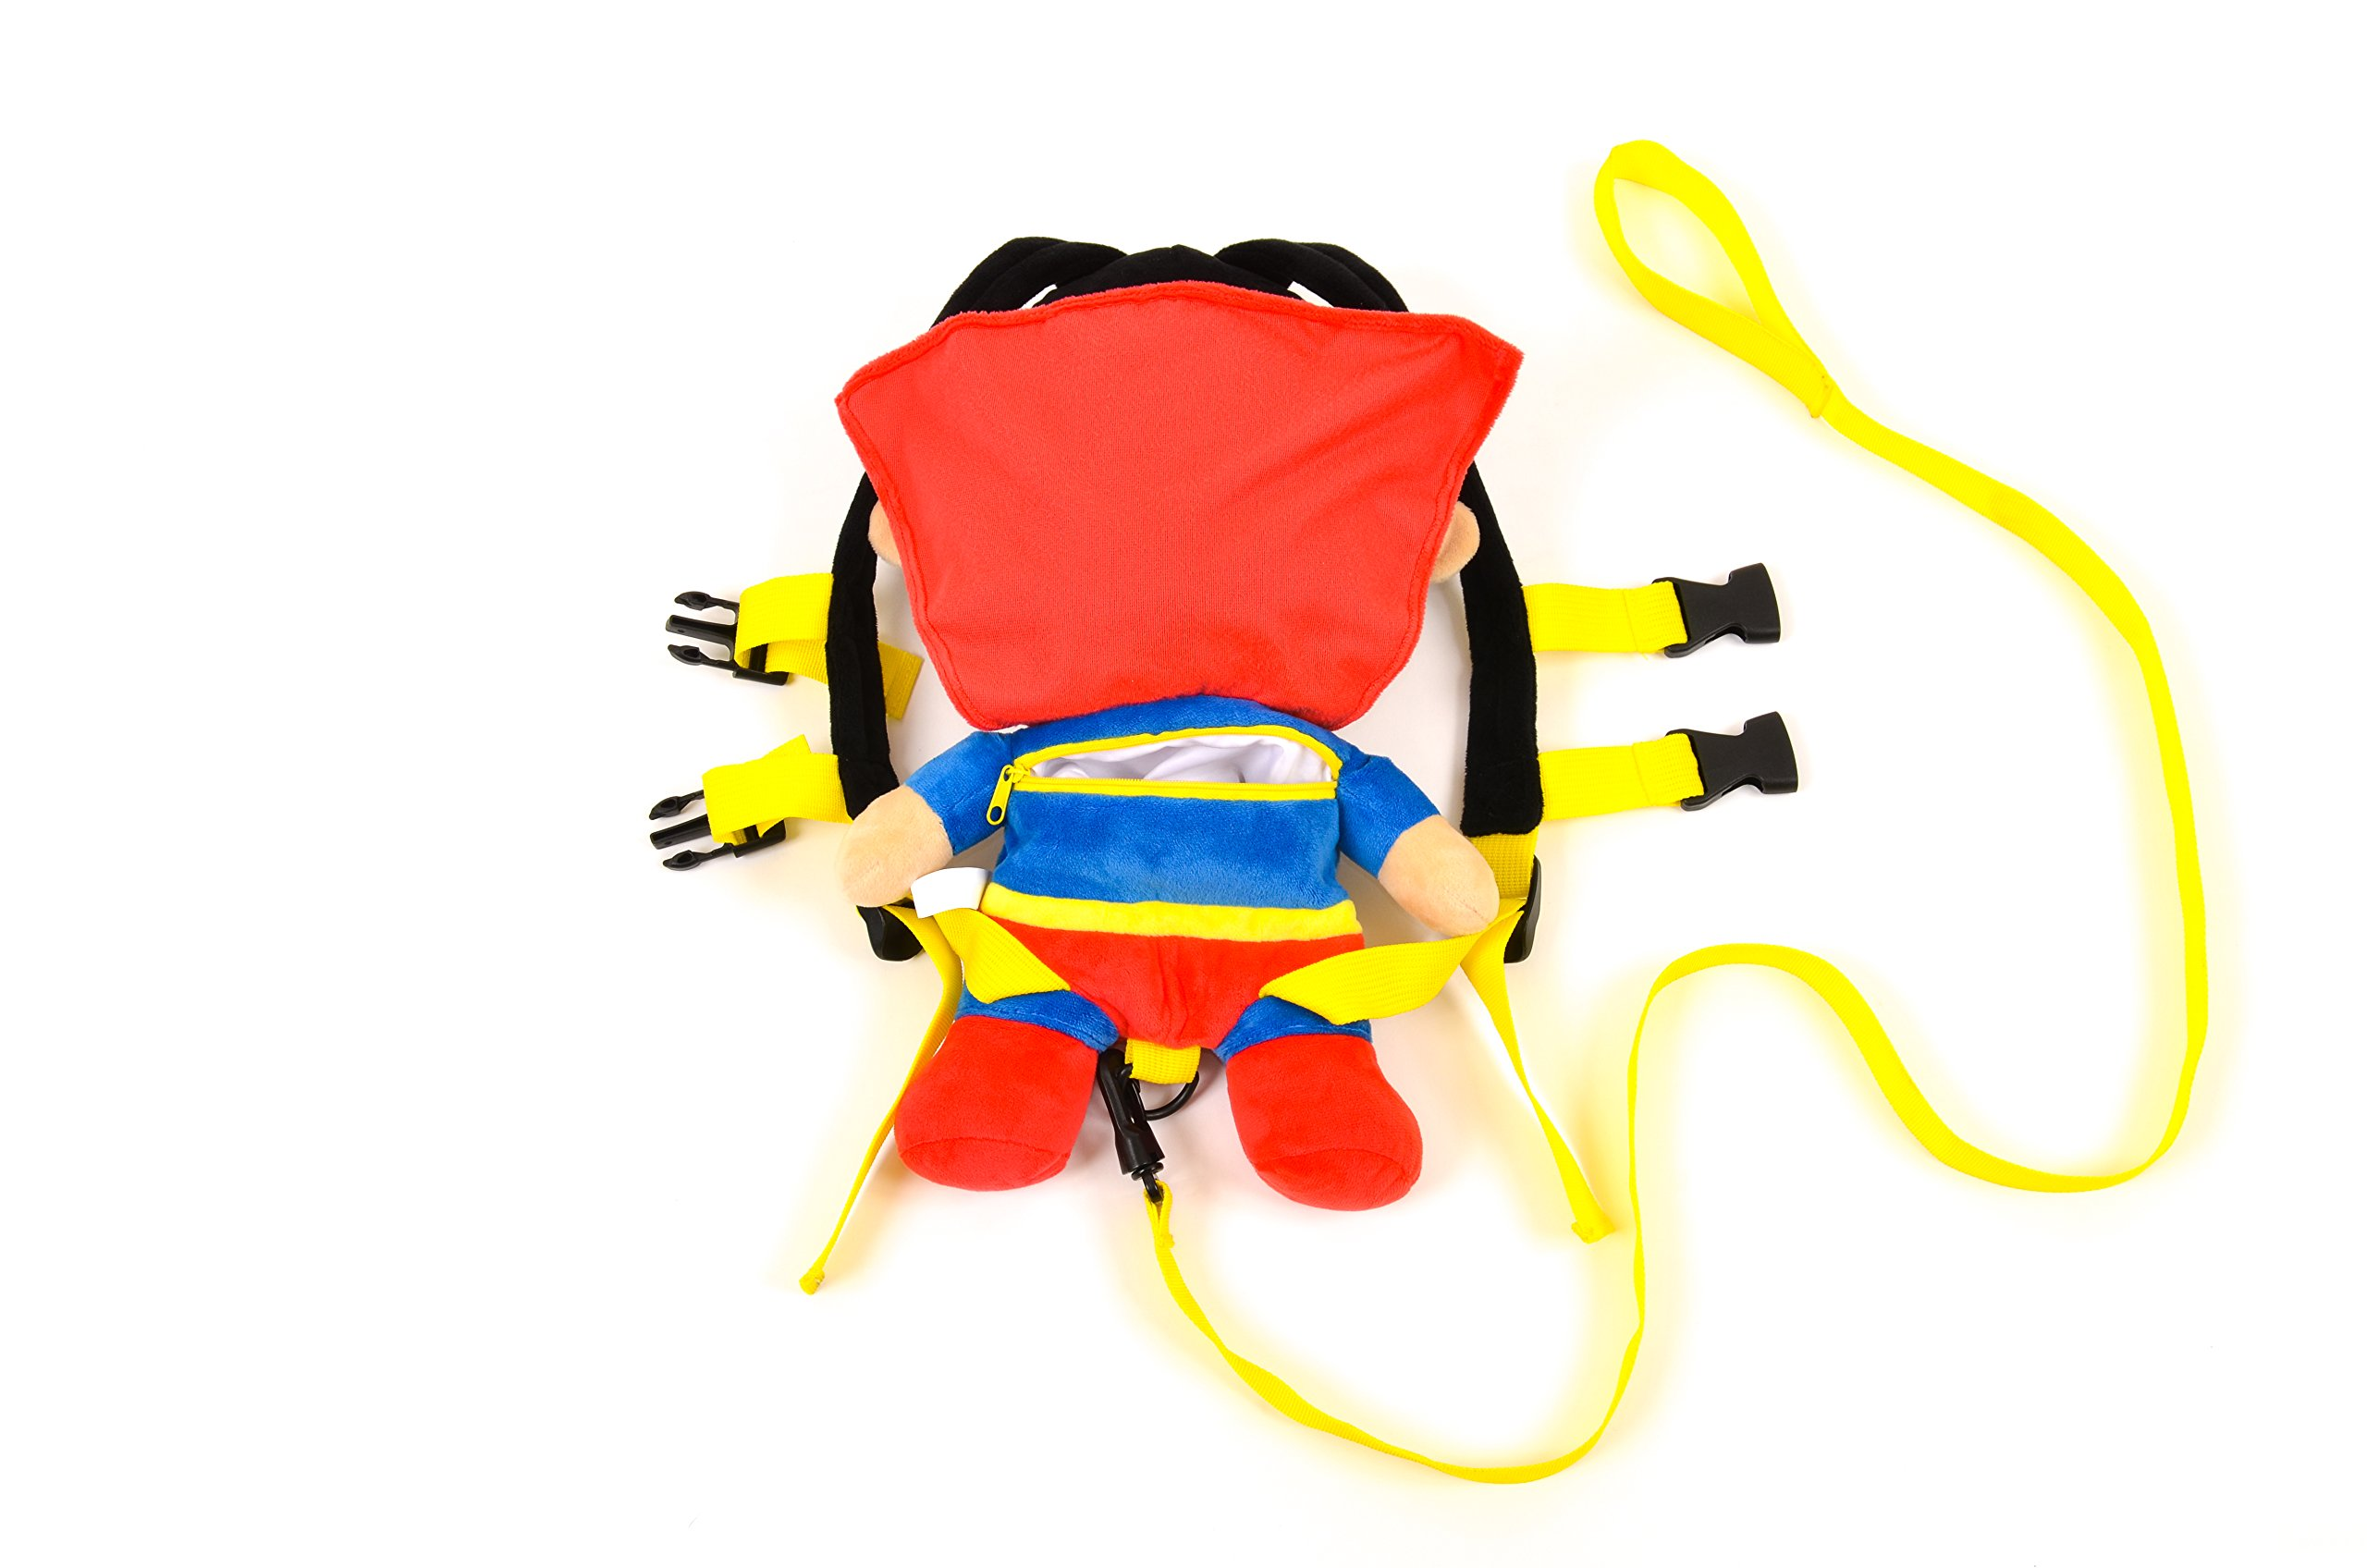 KidsEmbrace Superman Safety Harness Backpack, DC Comics 2 in 1 Harness Buddy, Red by KidsEmbrace (Image #3)